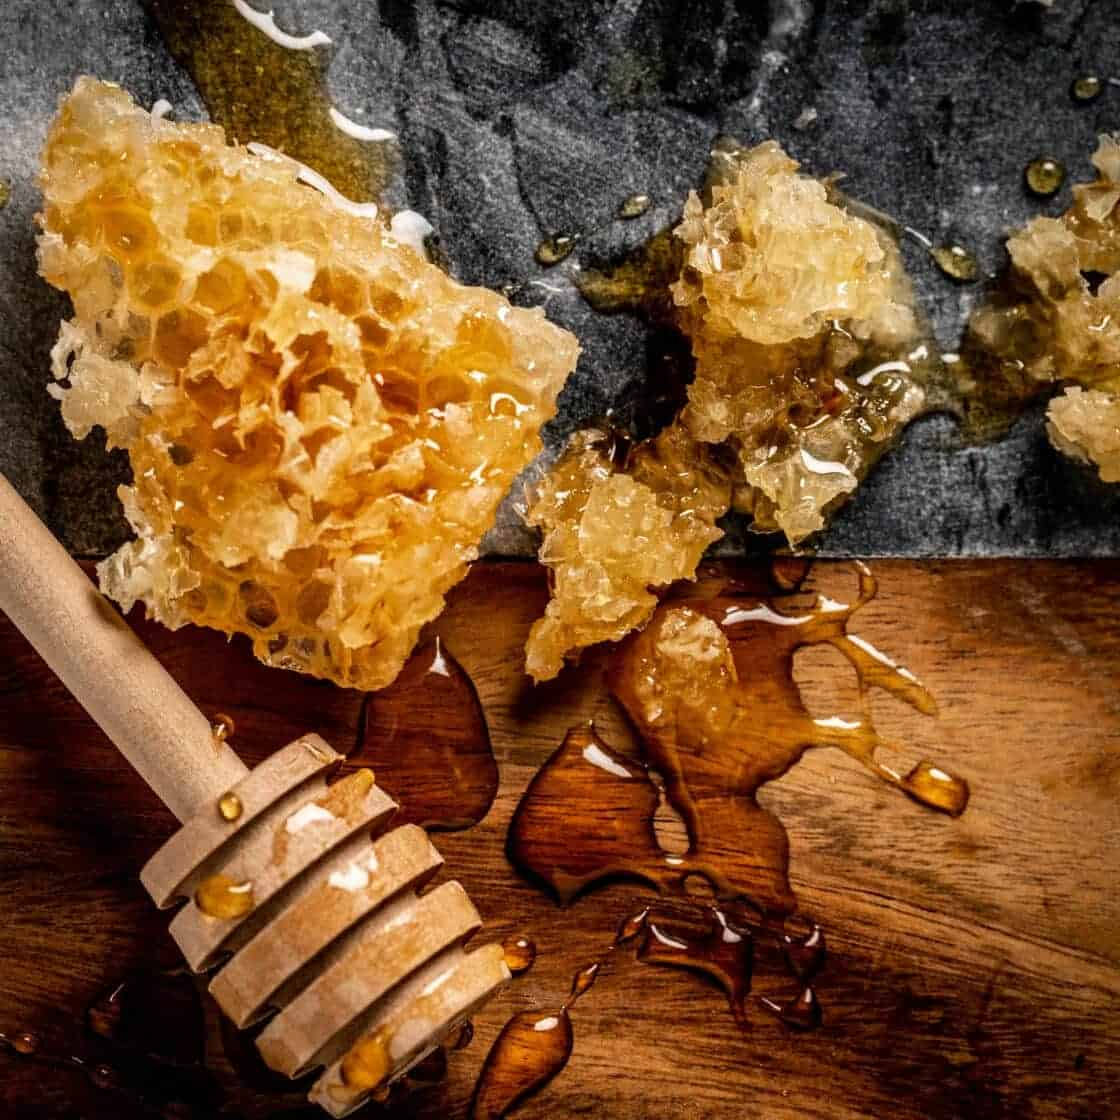 Roth cheese board wtih honey comb and honey stick